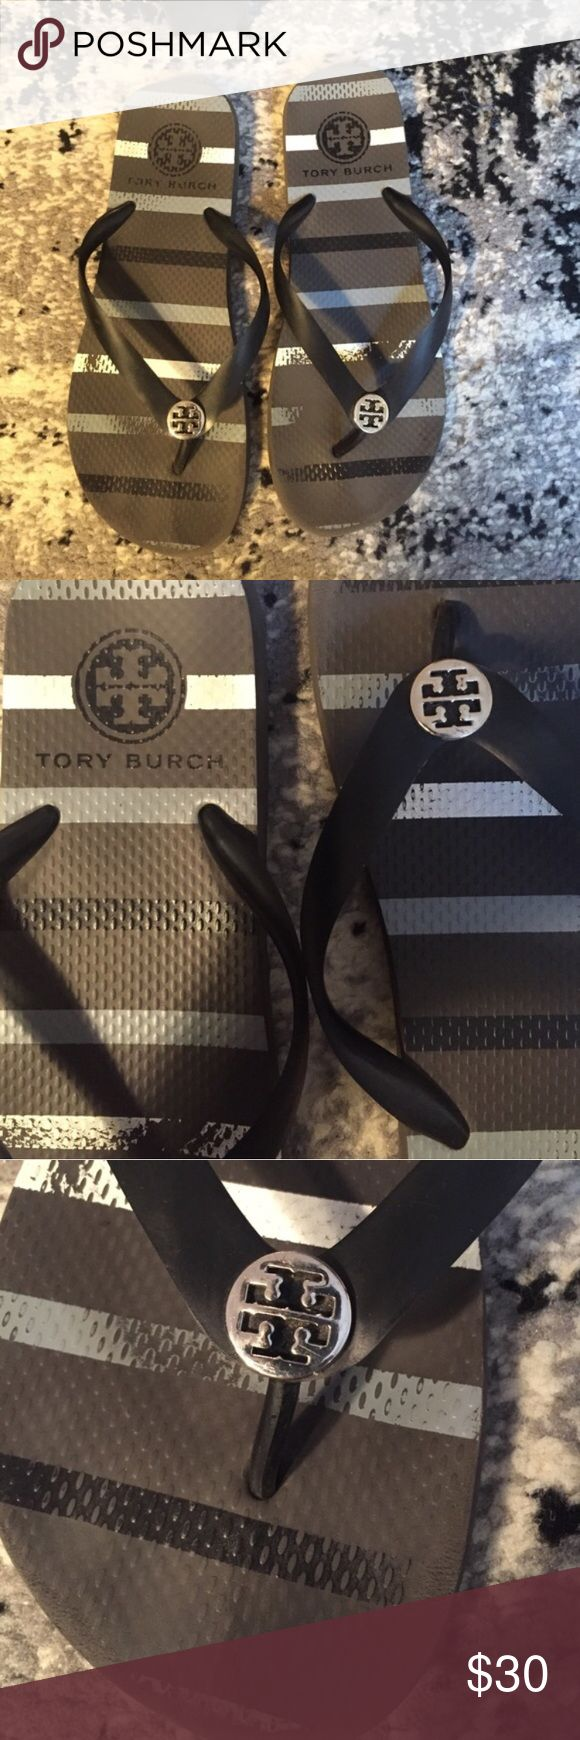 Tory Burch Flip Flops Tory Burch Flip Flops. Pattern of blues, grays, black and white a little worn in (see pictures) worn but good condition Tory Burch Shoes Sandals